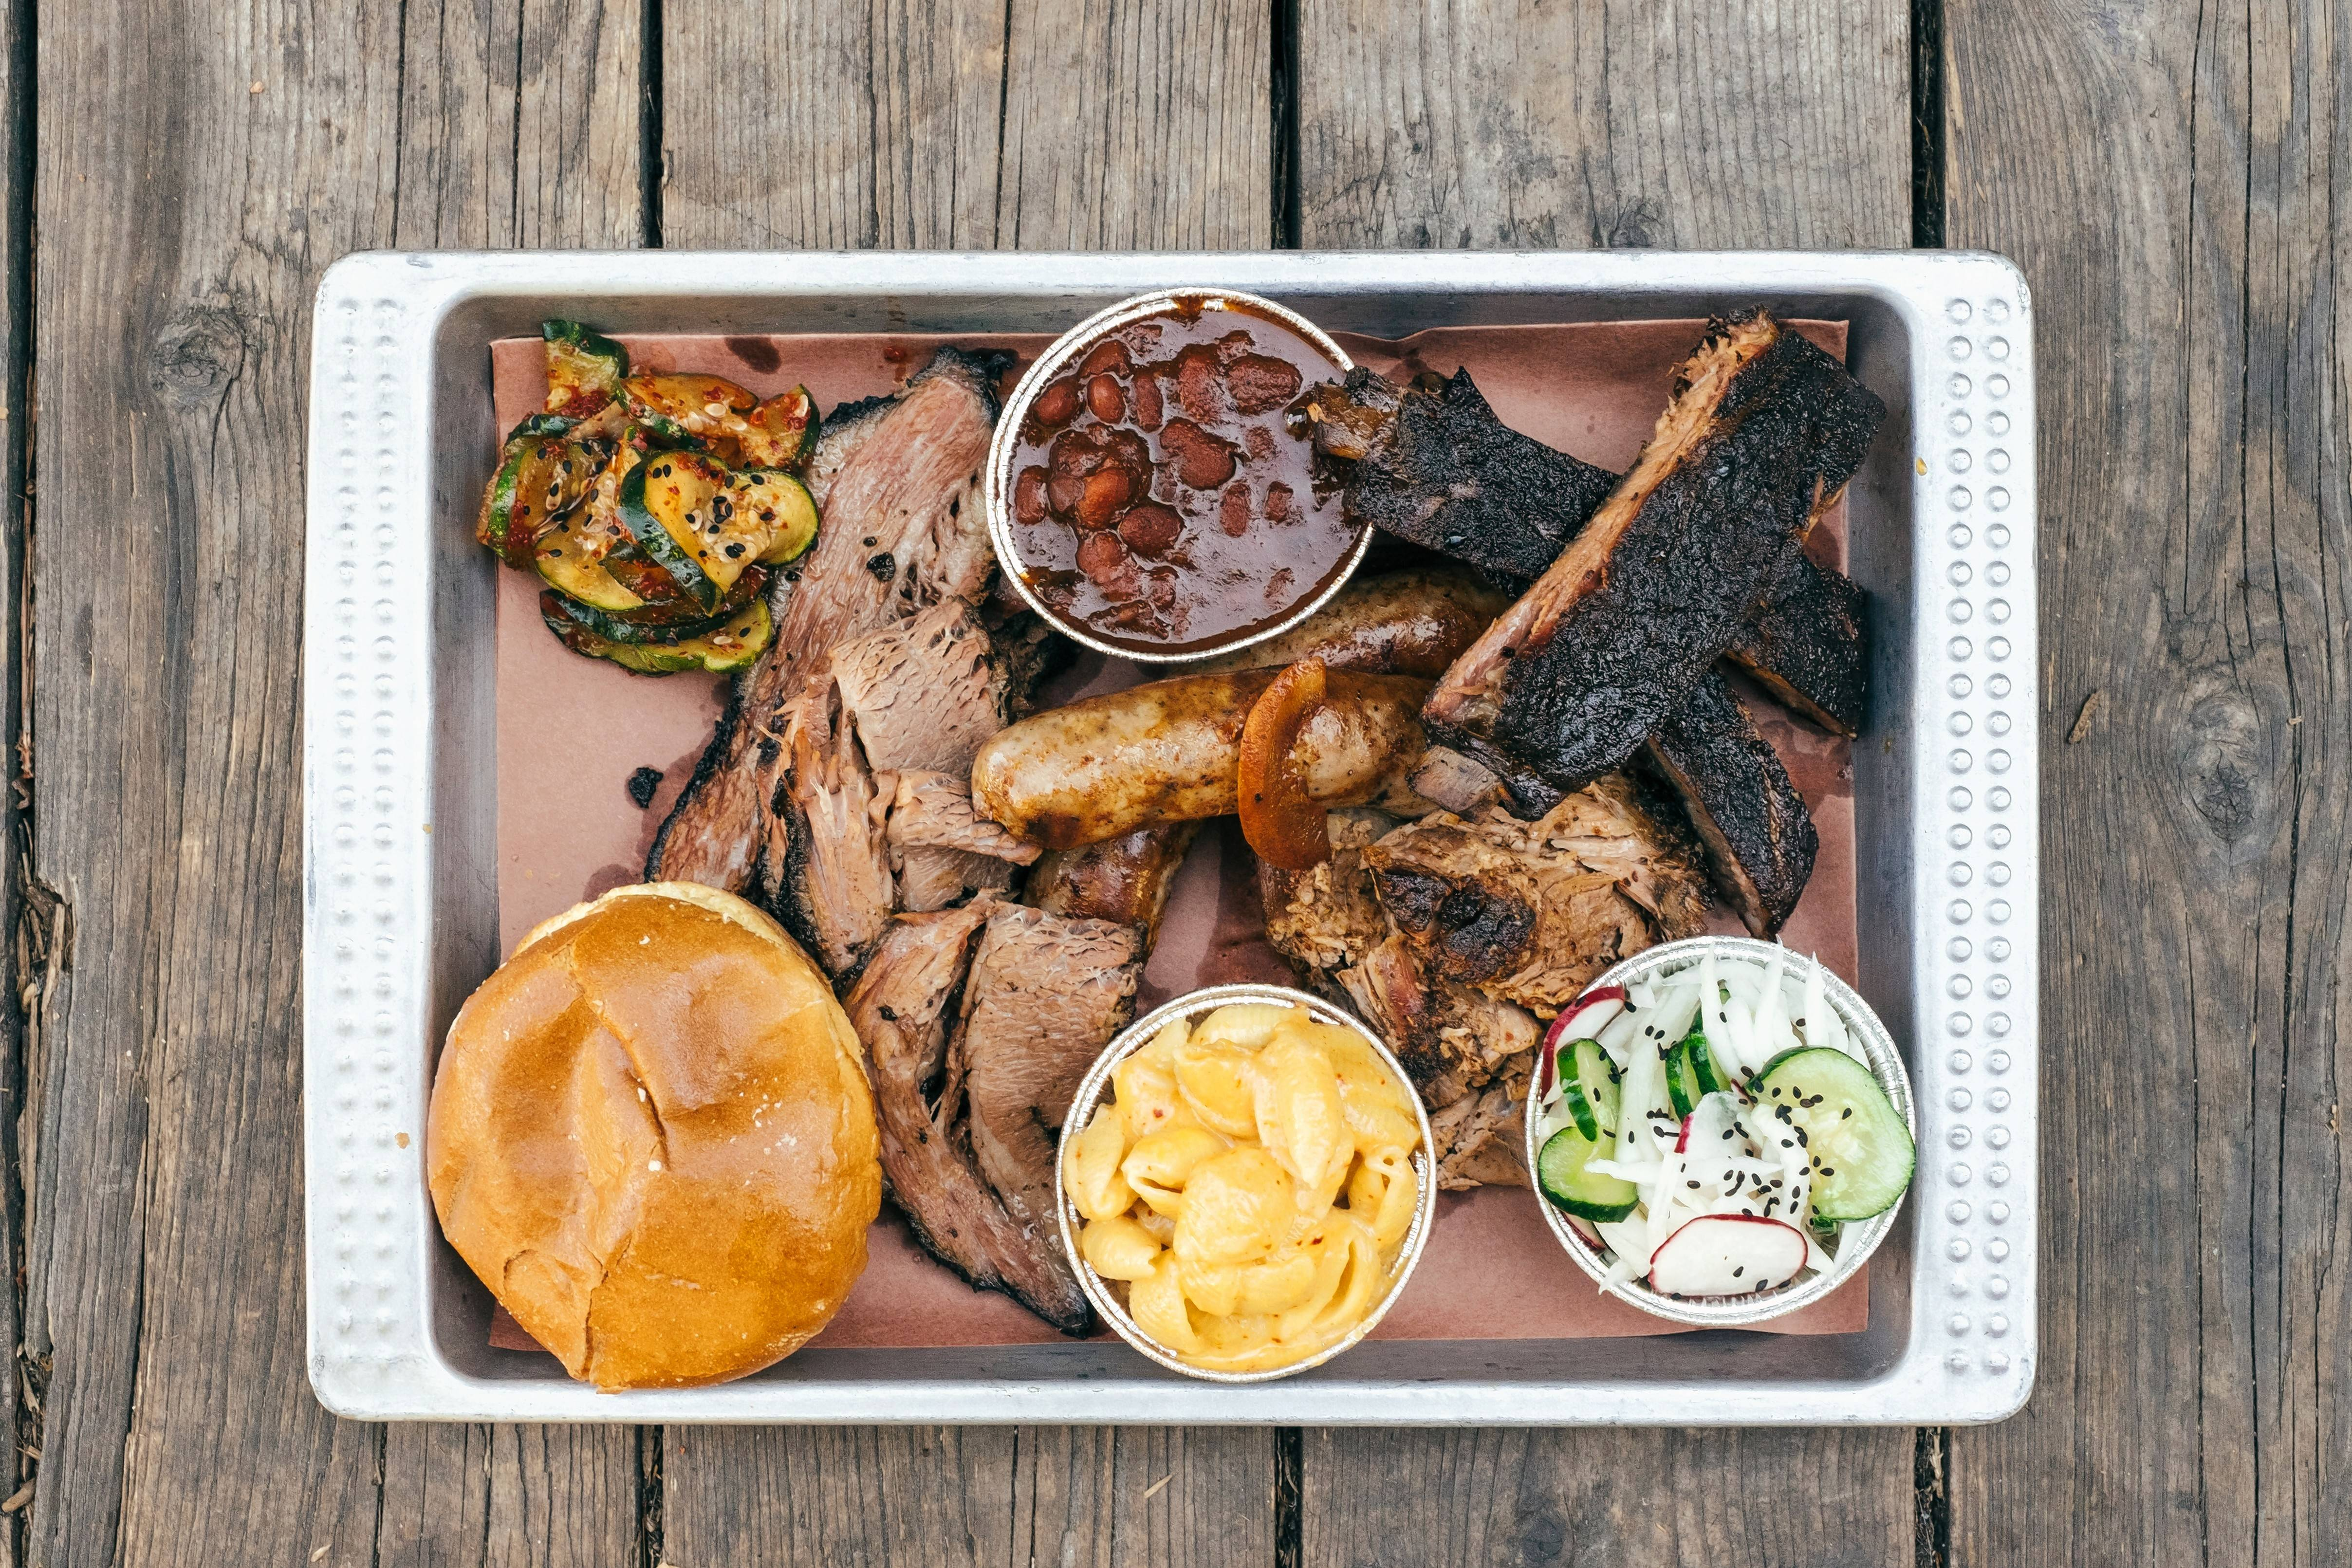 Korean influences go into what otherwise looks like a traditional tray of barbecue at Heirloom Market BBQ in Atlanta.